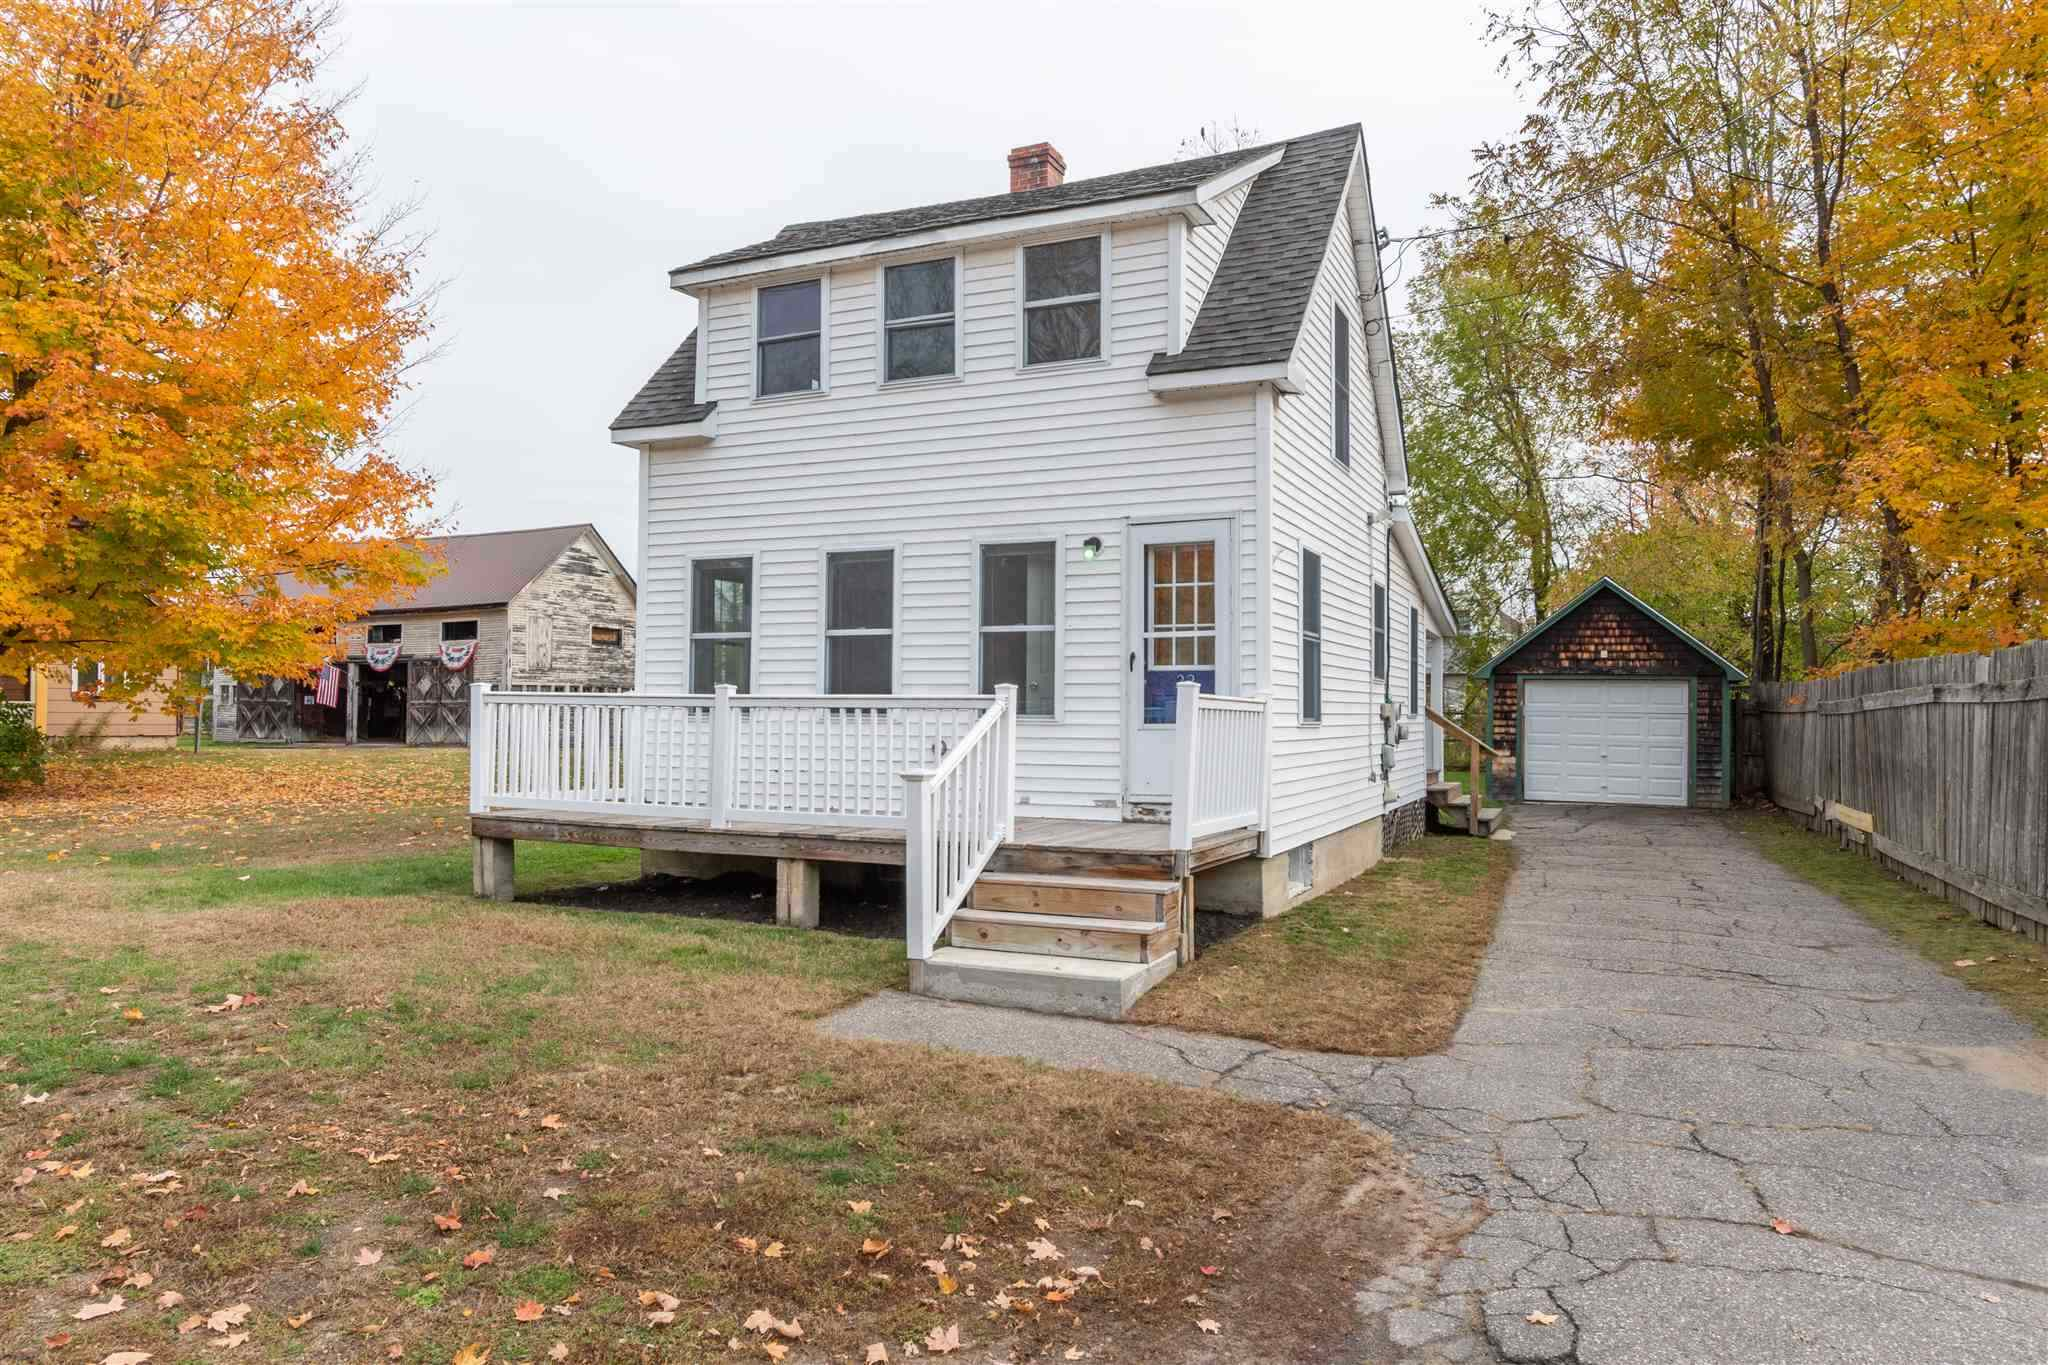 Photo of 22 N River Street Holderness NH 03245